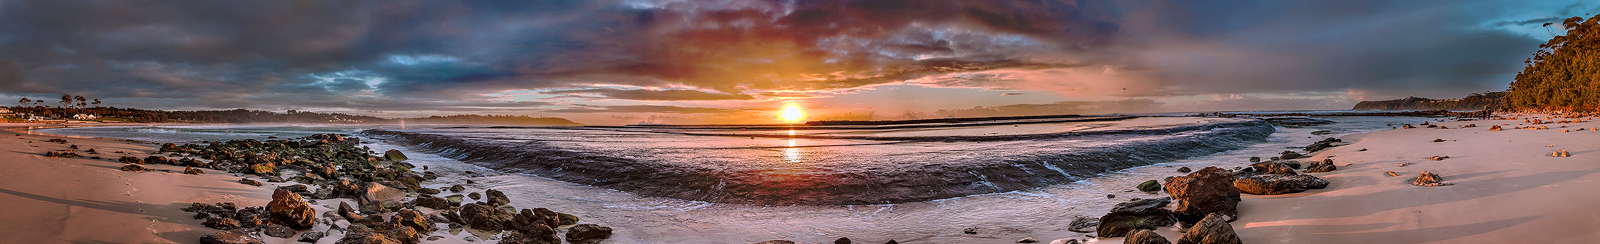 Mollymook Dawn Panorama by TarJakArt